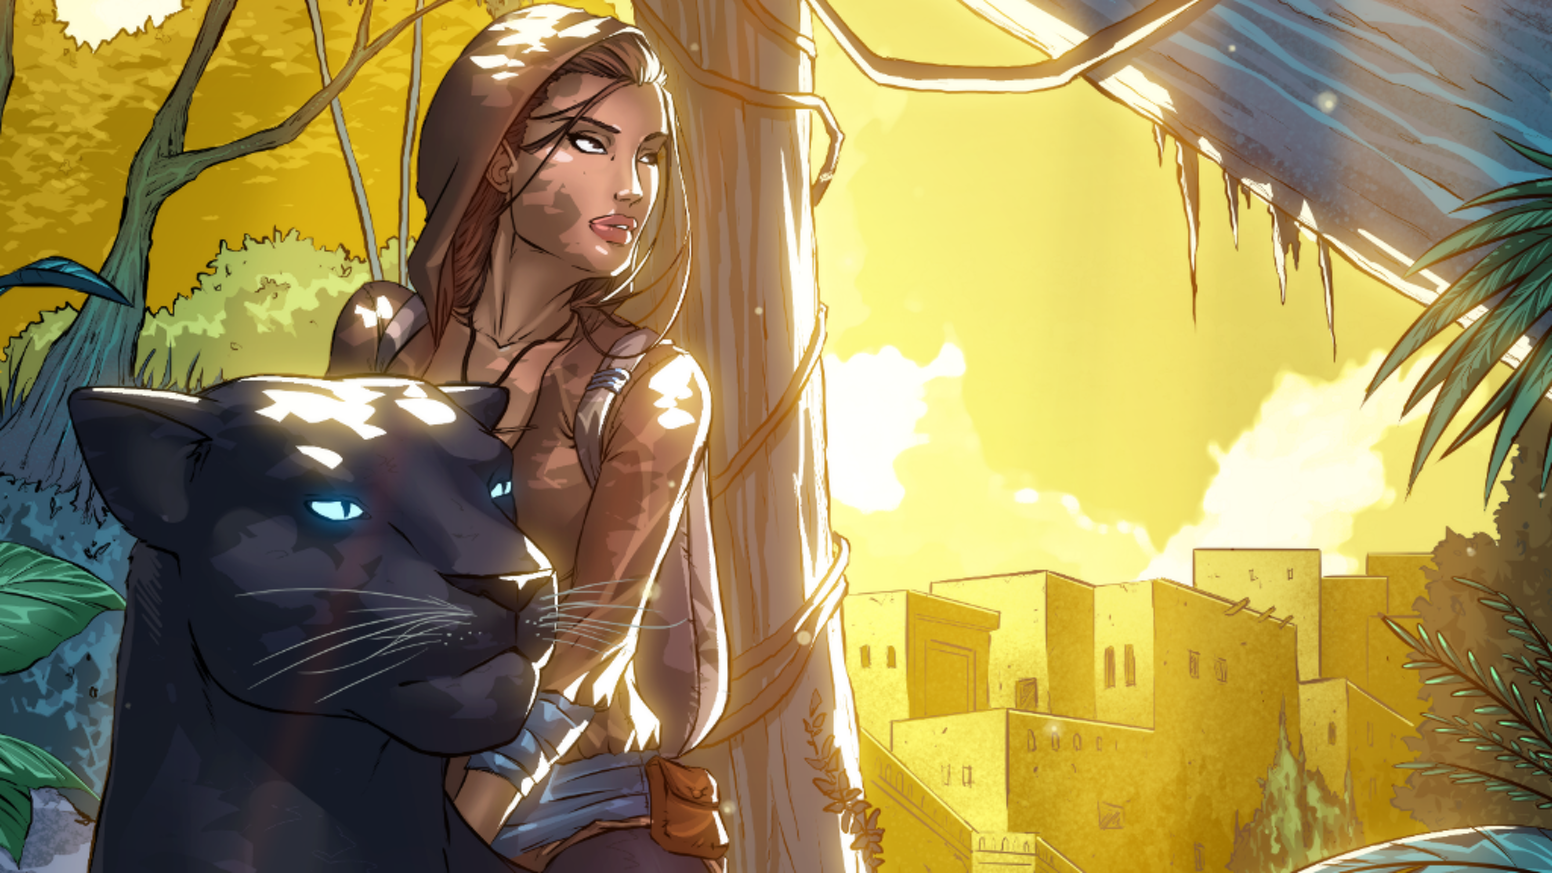 This isn't your typical fairytale. Explore the world of Zareen and the secrets that it holds...